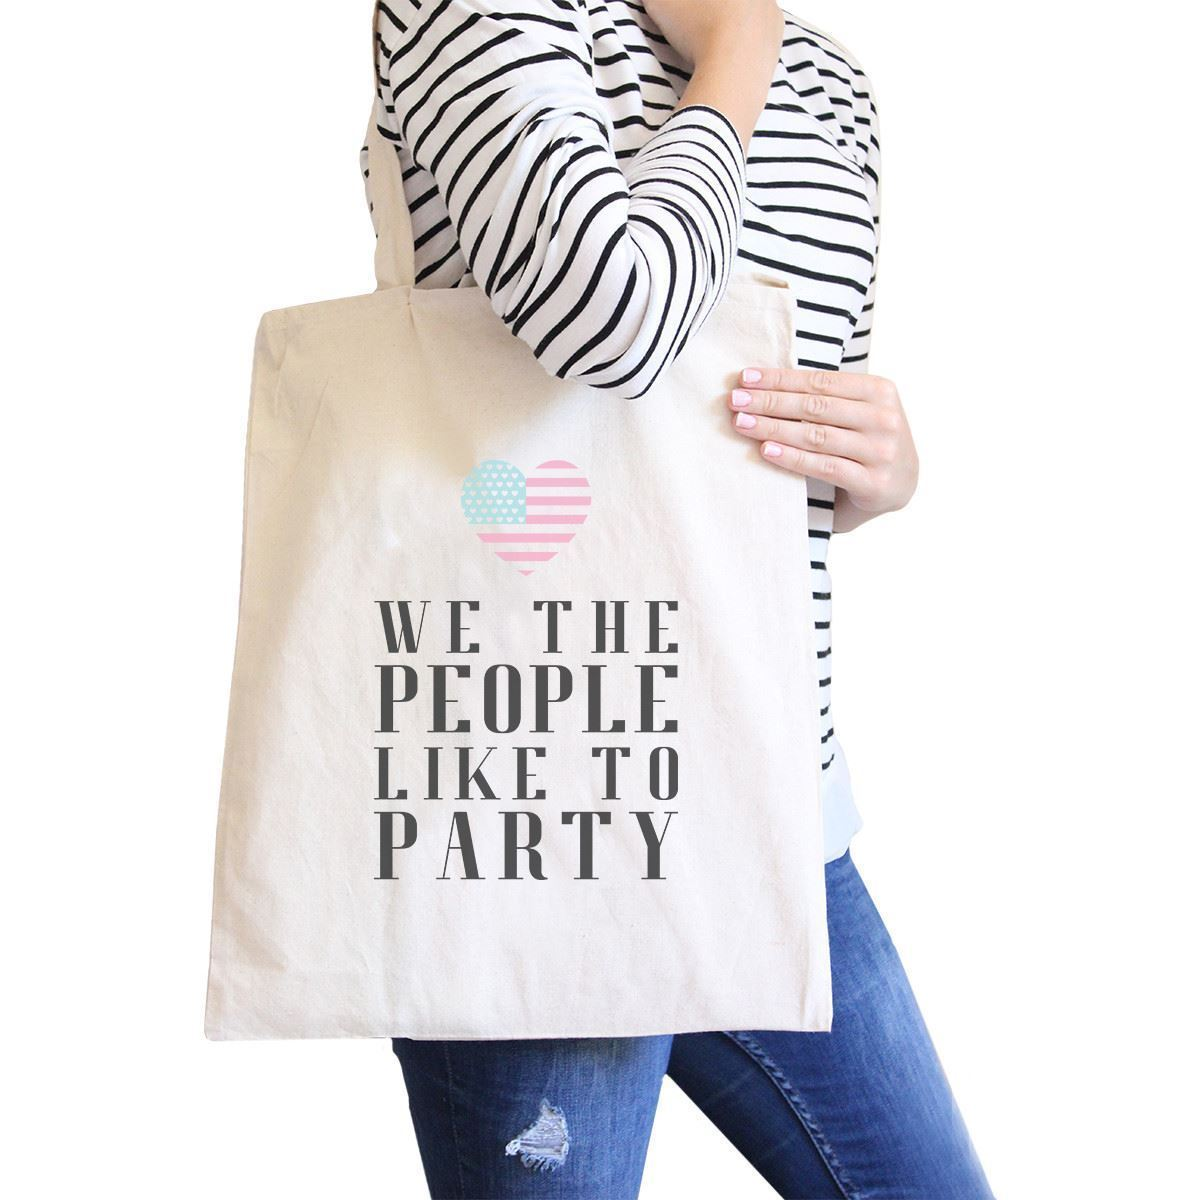 We The People Natural Cotton Canvas Bag Funny Gifts For 4th of July - $15.99